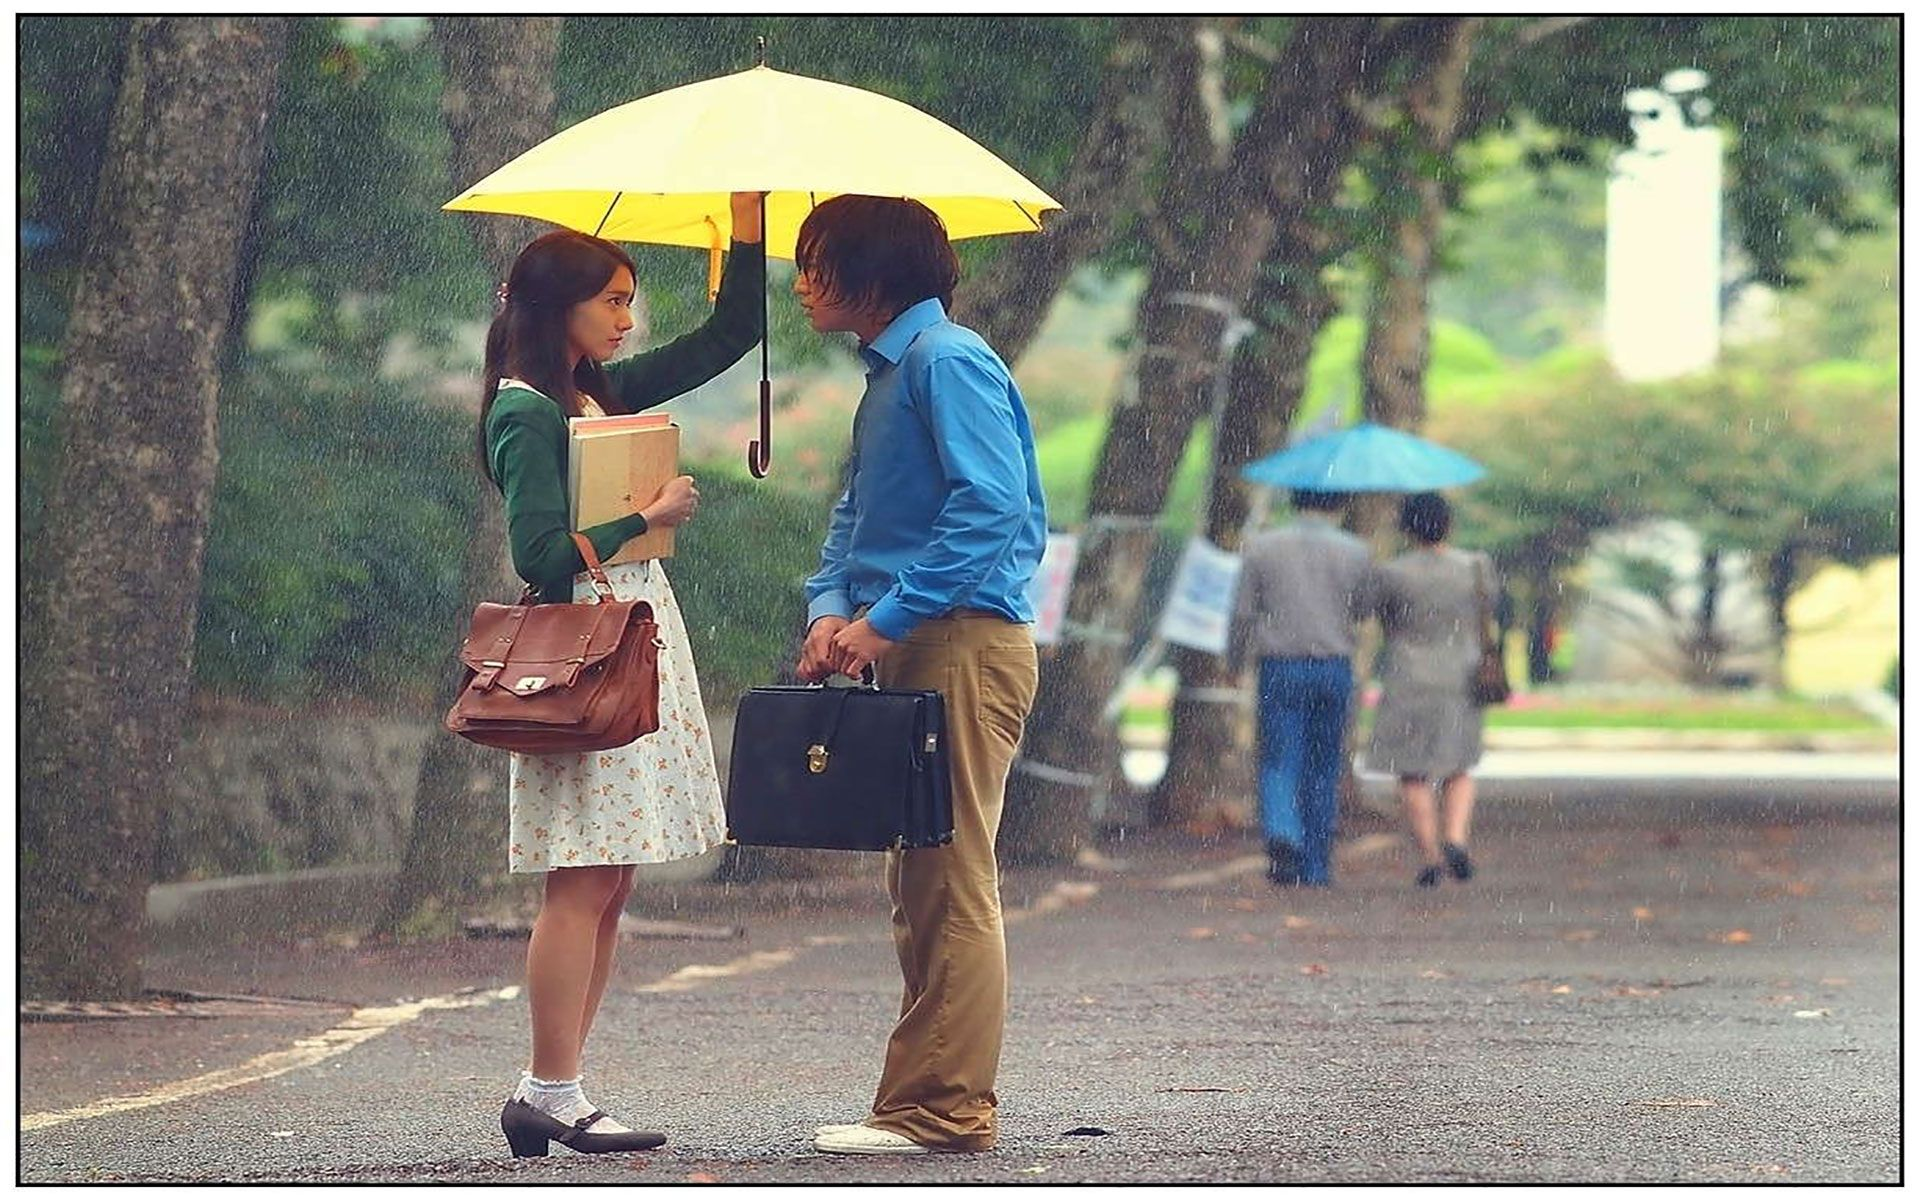 8k Rain Couple Wallpaper: First Impression Of Love In A Rainy Day